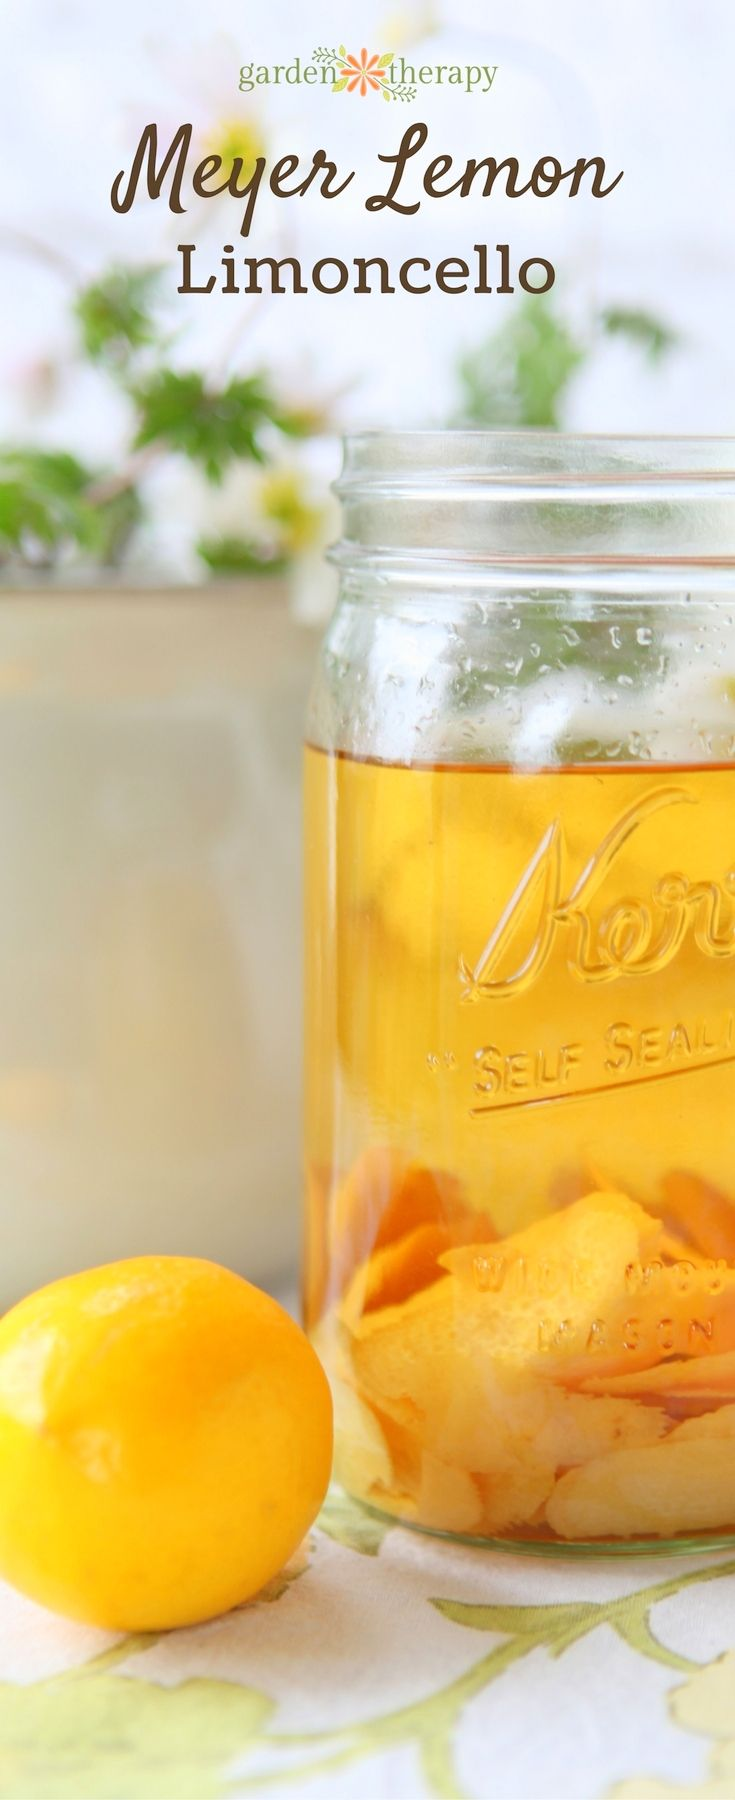 How to make Meyer lemon limoncello